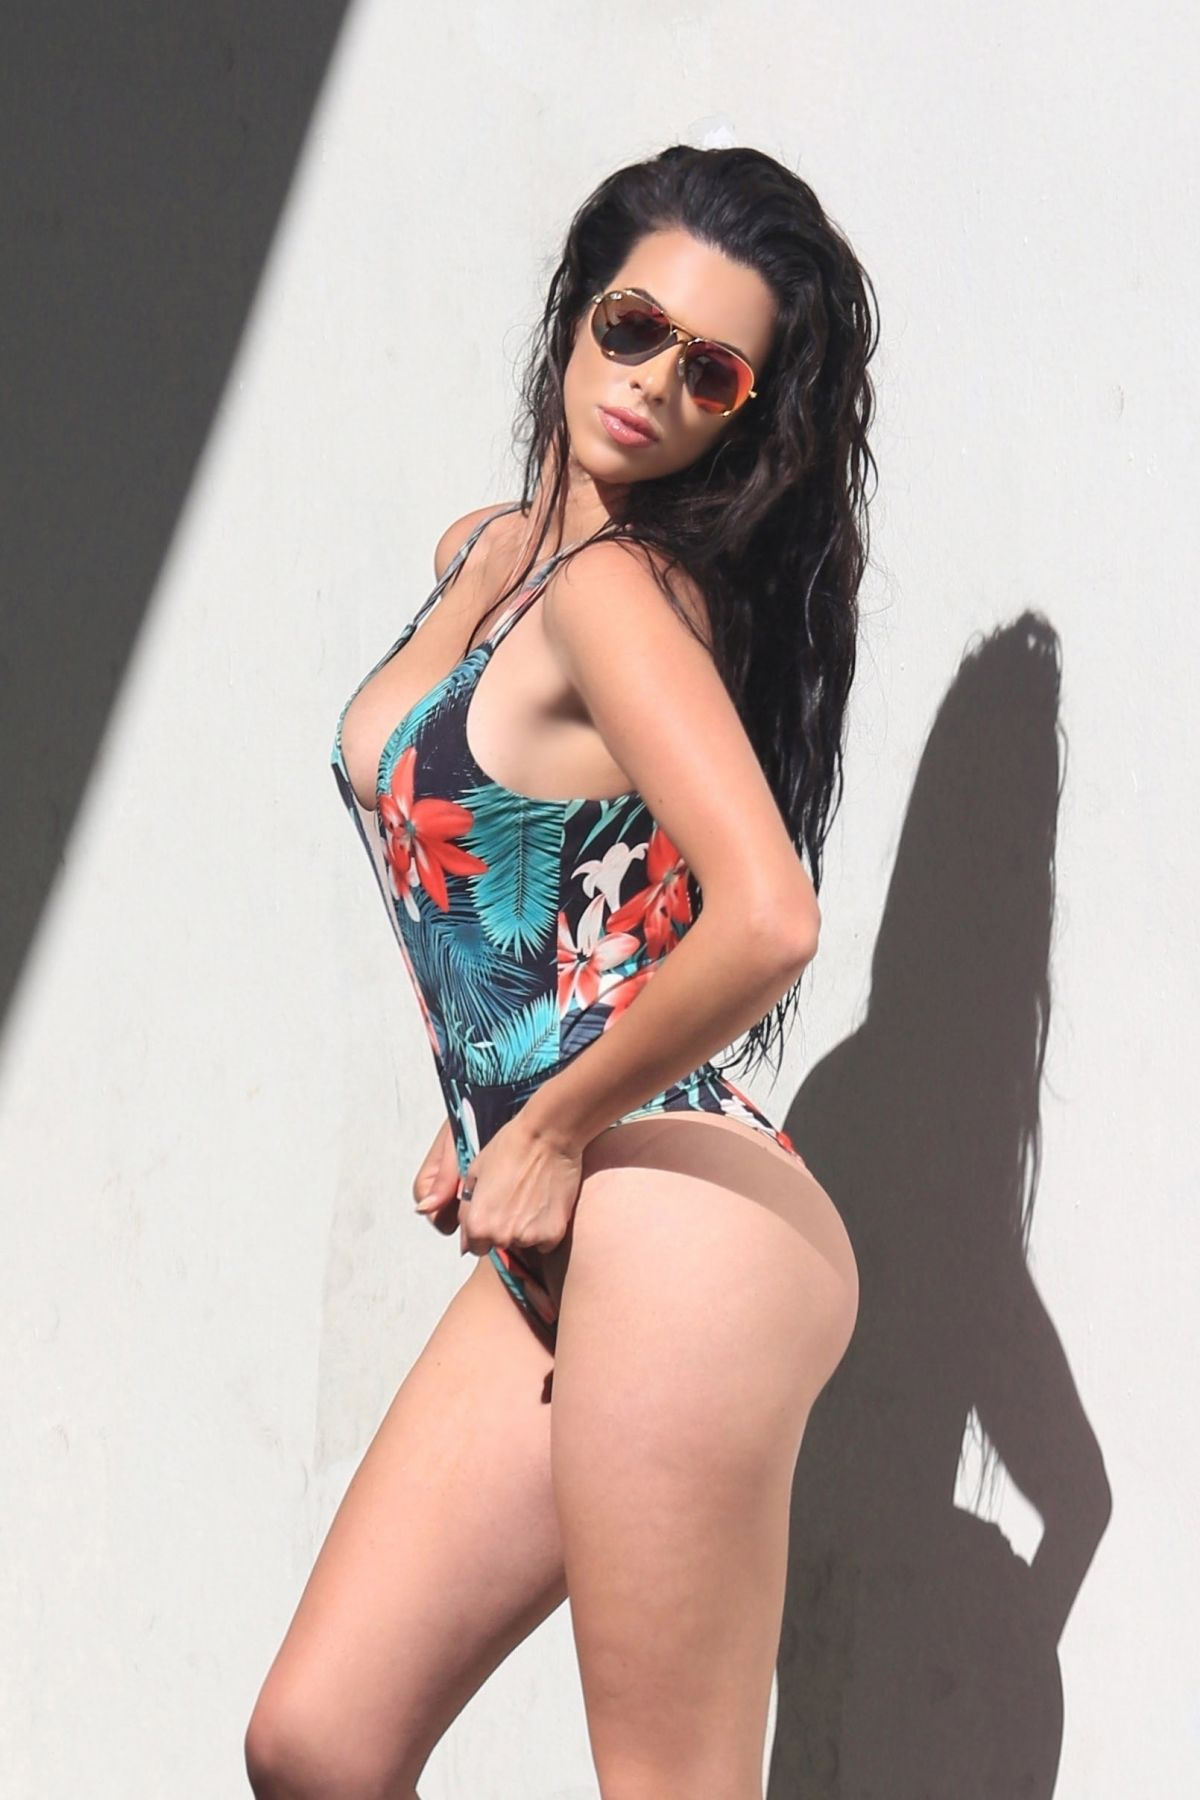 Paparazzi Mercedes Javid naked (77 photo), Topless, Cleavage, Boobs, cameltoe 2018